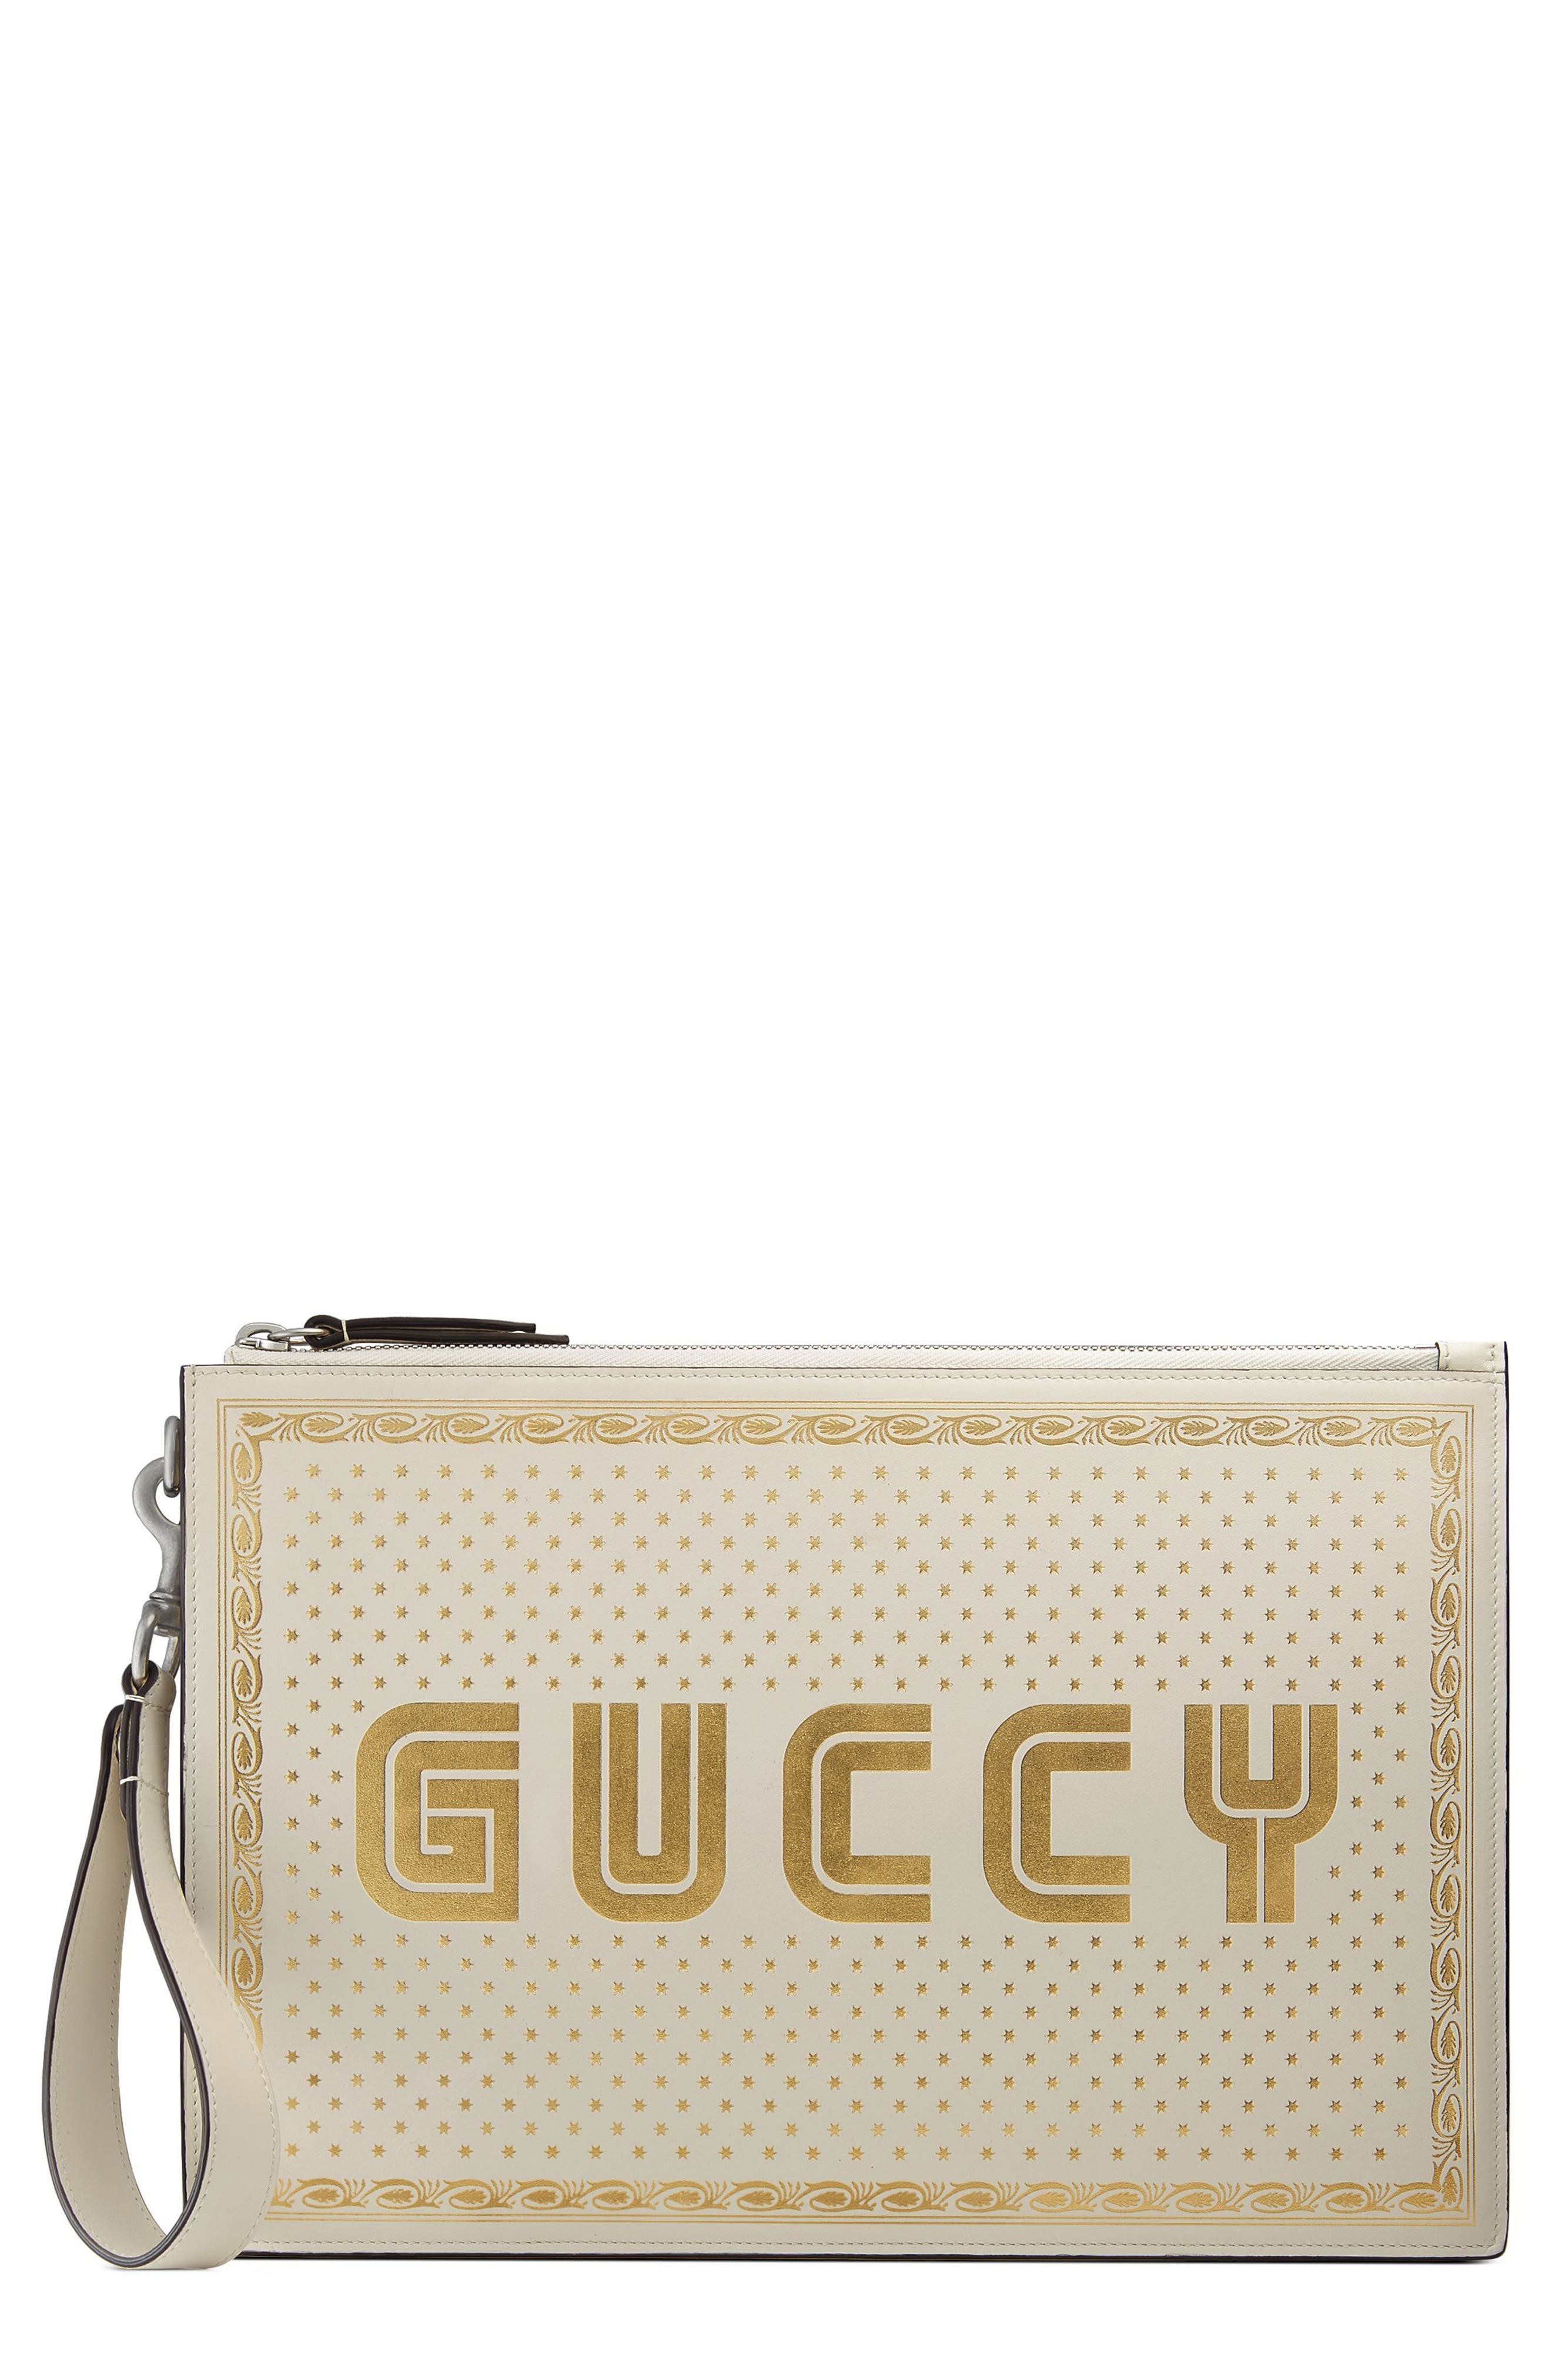 Gucci Guccy Moon & Stars Leather Zip Pouch